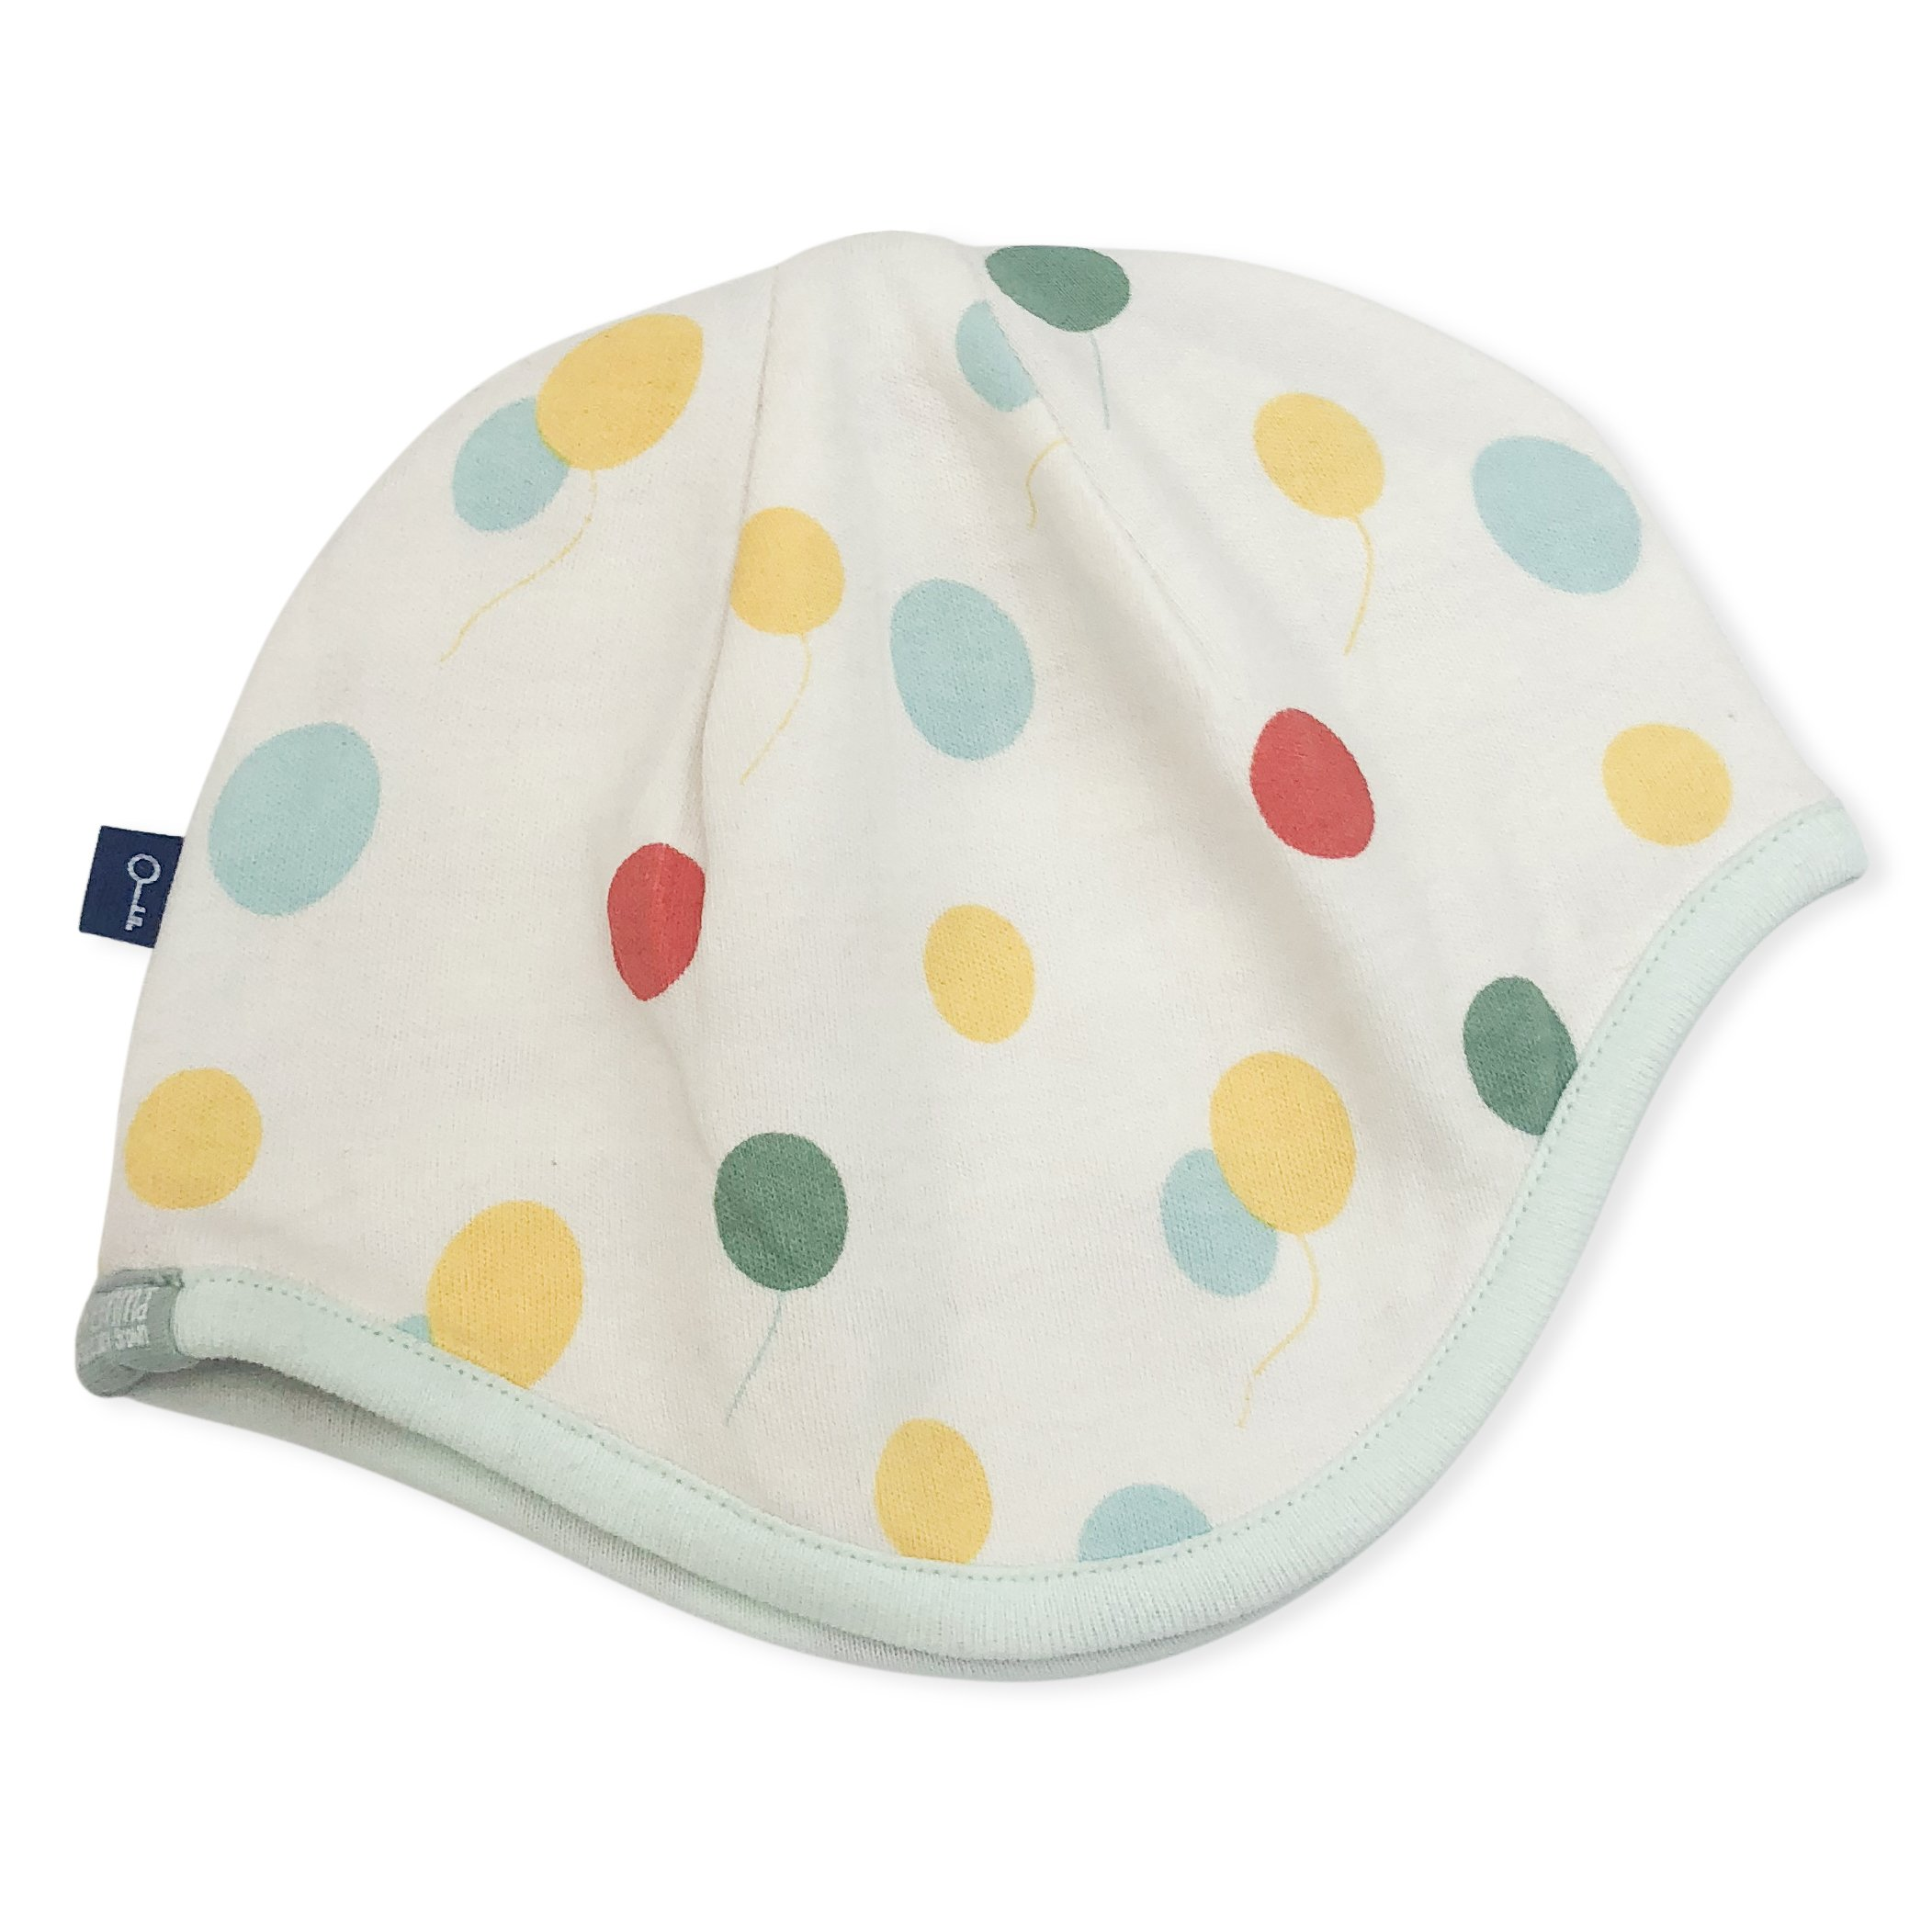 Finn Emma Organic Cotton Cap Reversible Balloons Red White